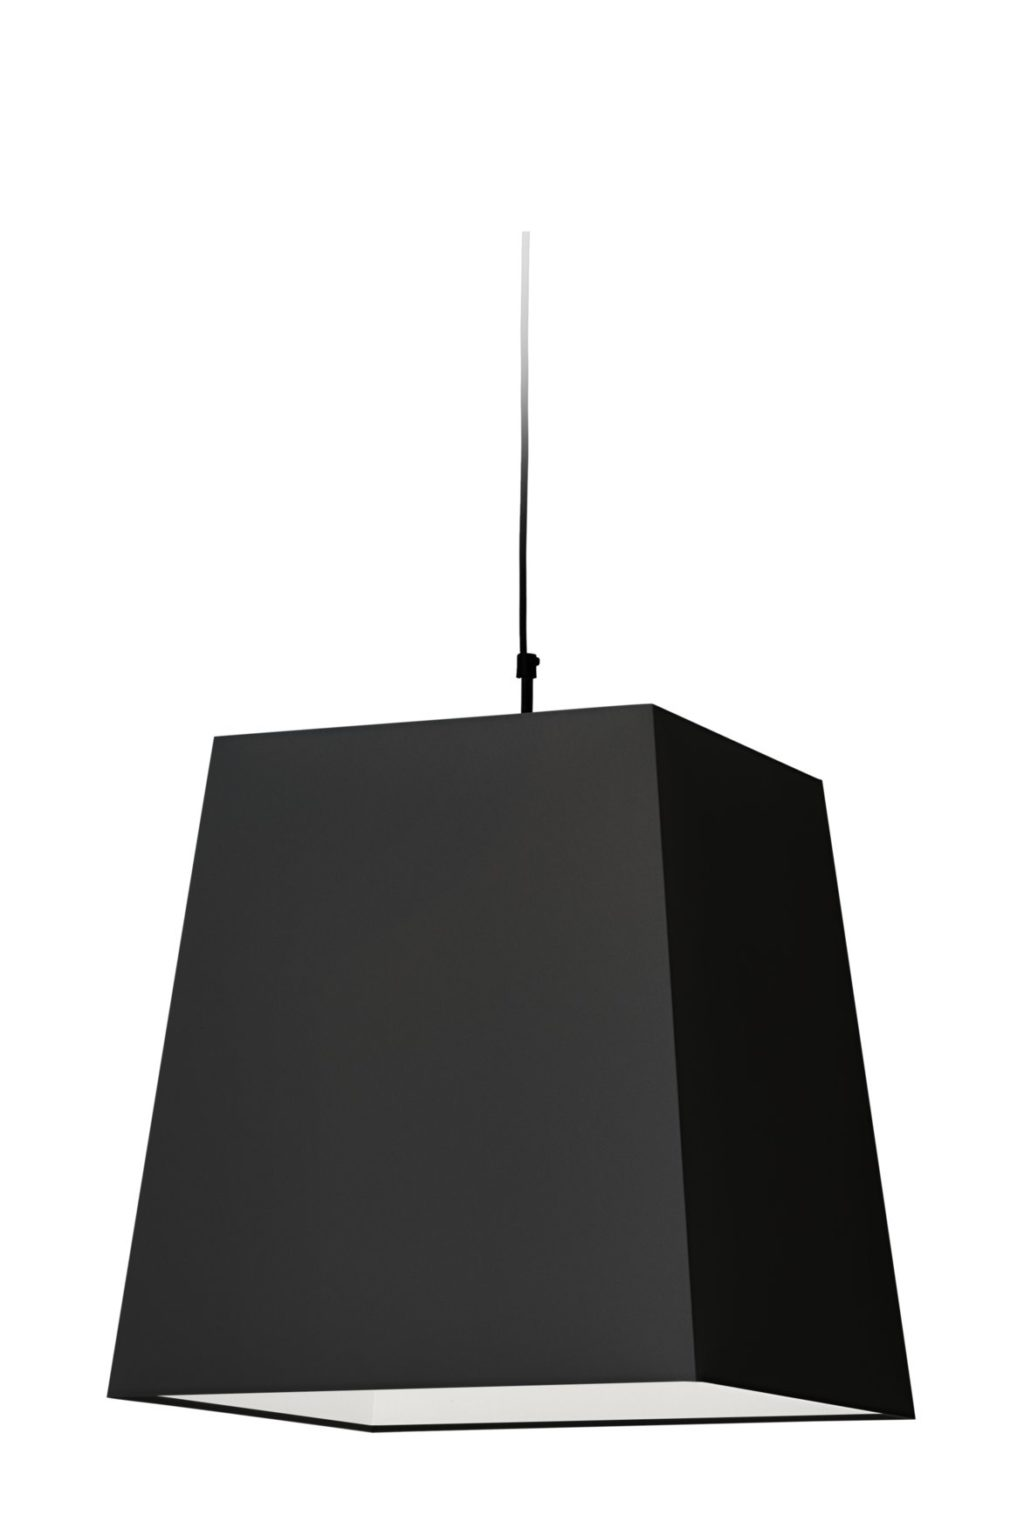 https://desidea.hu/wp-content/uploads/fly-images/160137/moooi-square-fuggesztett-lampa1-1024x0.jpg